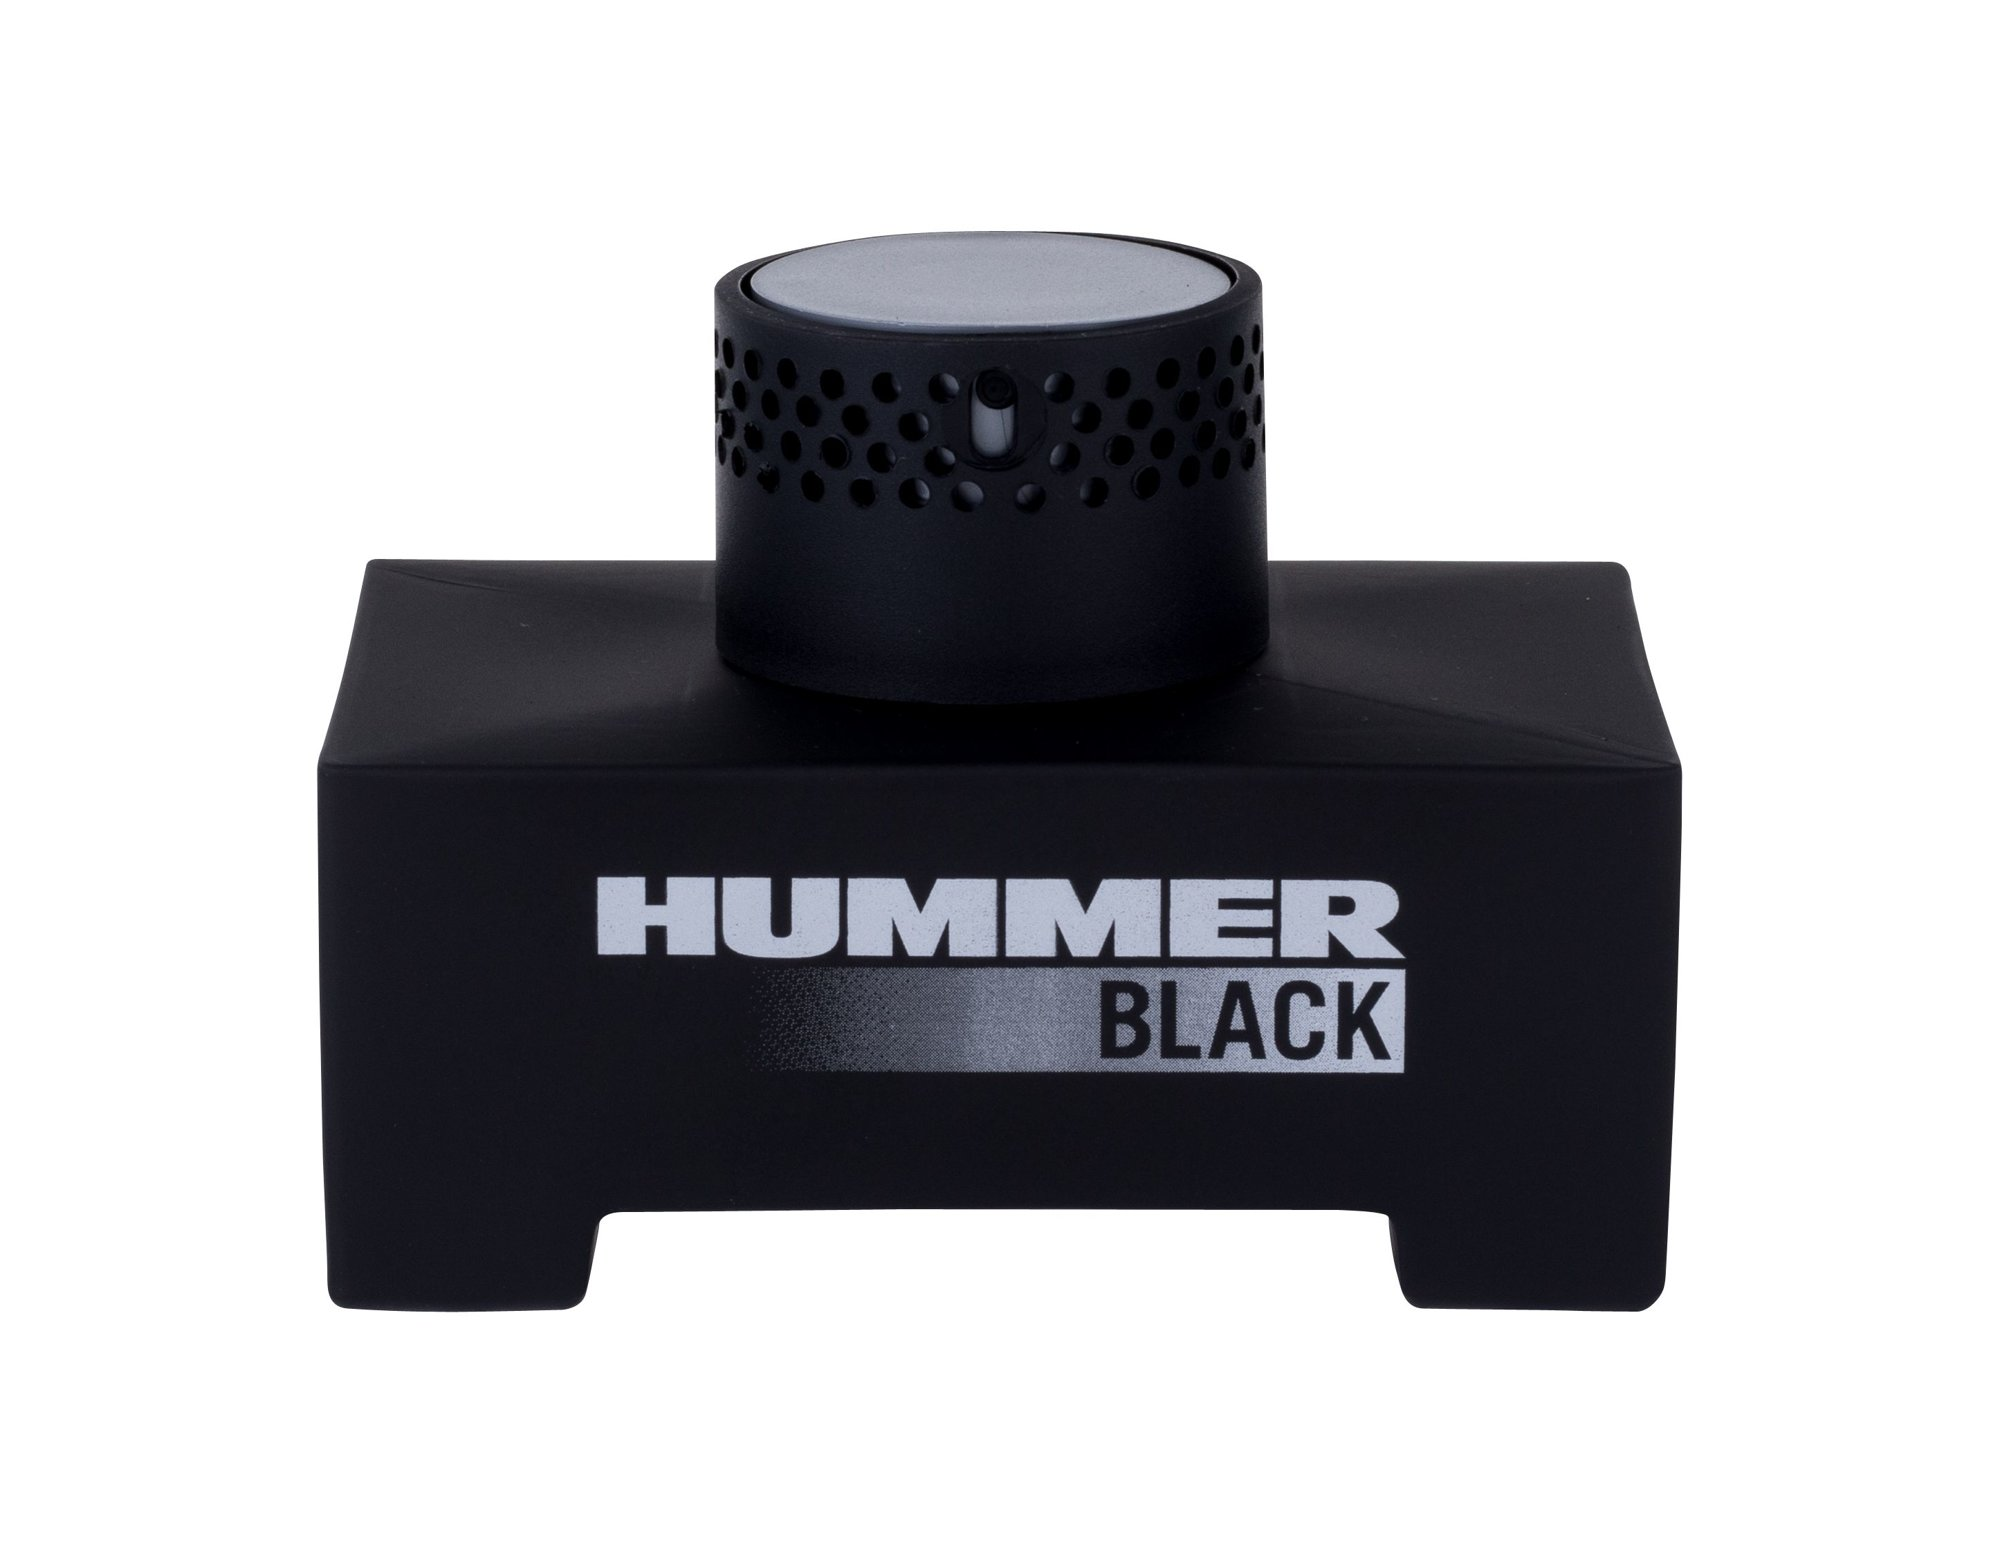 Hummer Hummer Black EDT 125ml